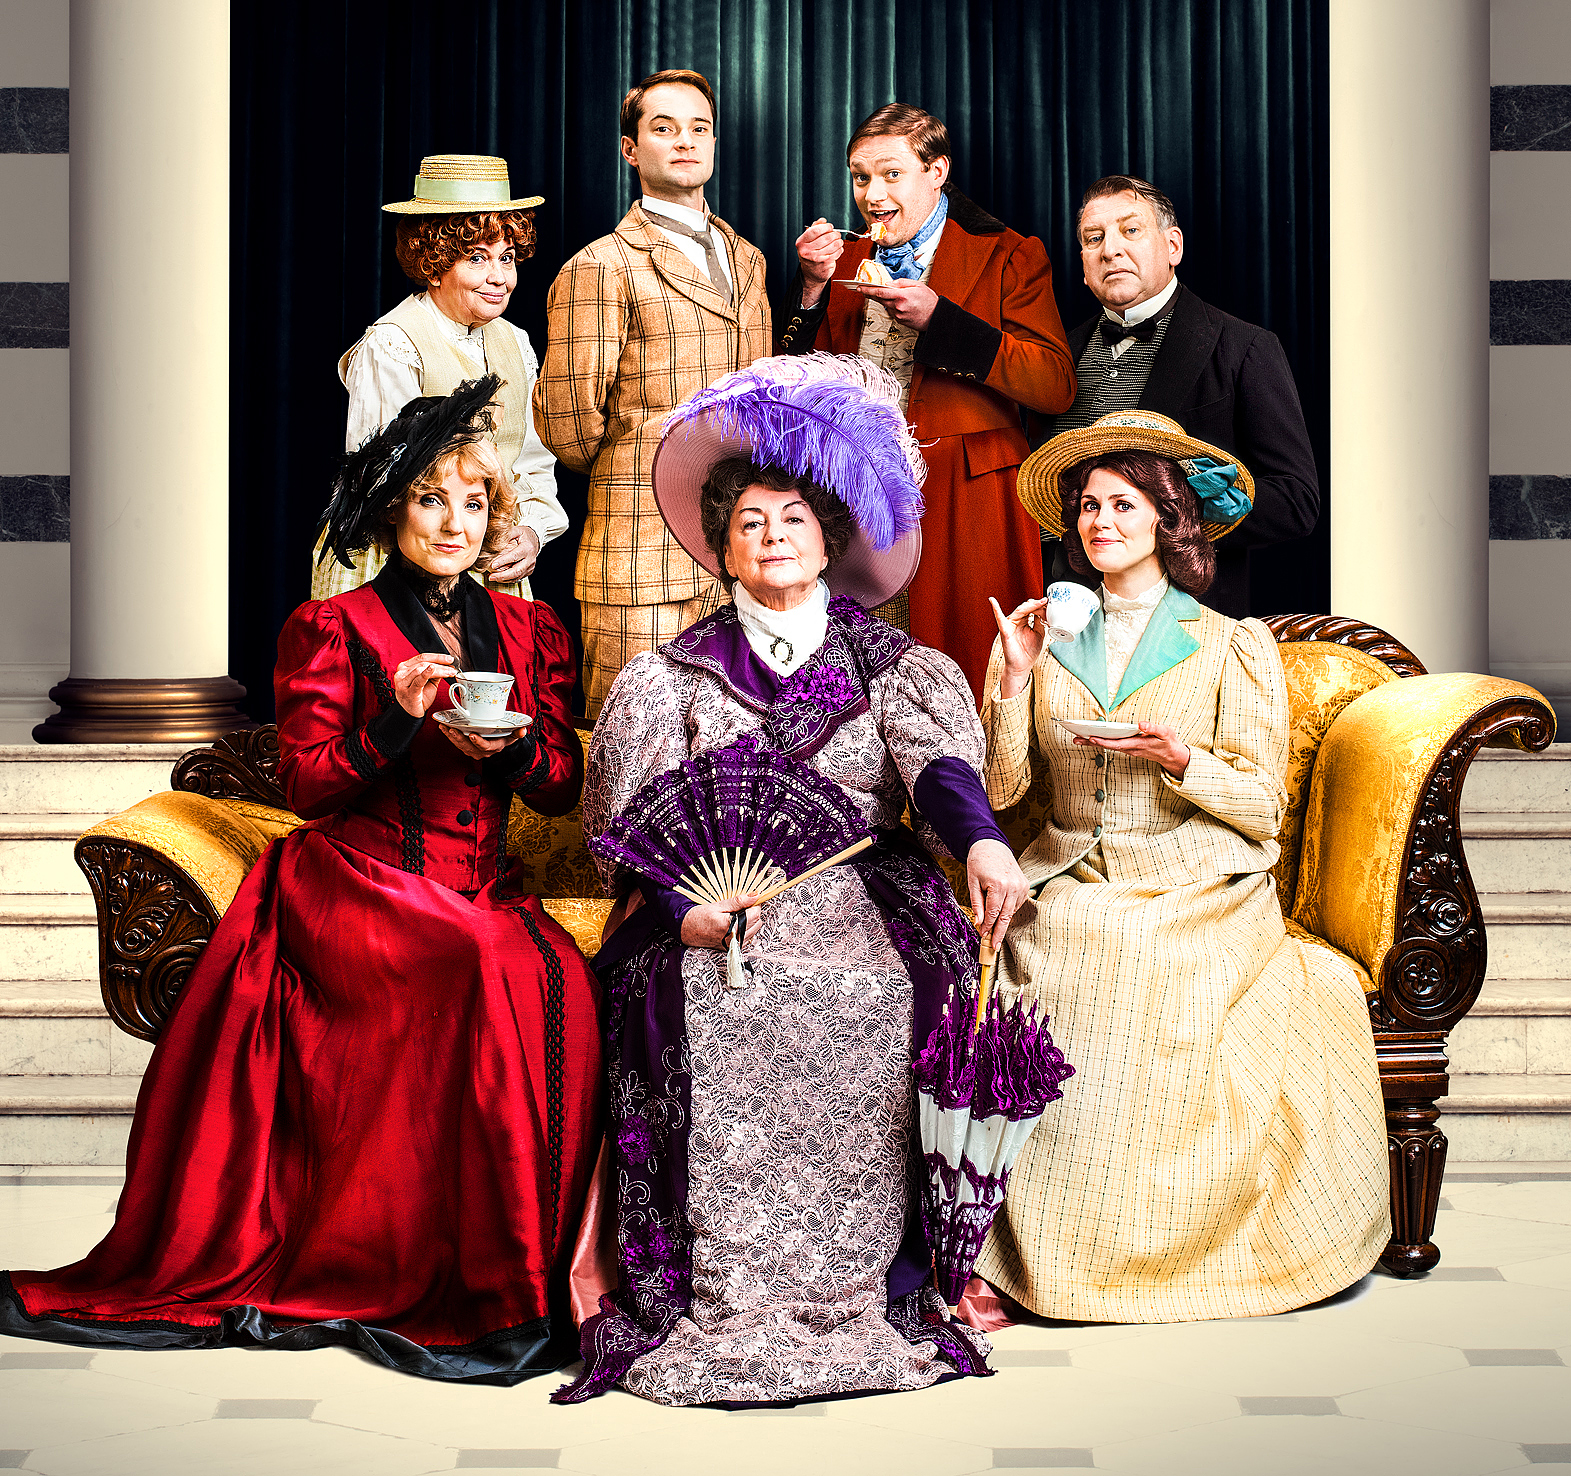 LtoR (Back) Susan Penhaligon Peter Sandys-Clarke Thomas Howes Simon Shackleton (Front) Kerry Ellis Gwen Taylor & Louise Coulthard in The Importance of Being Earnest. Credi